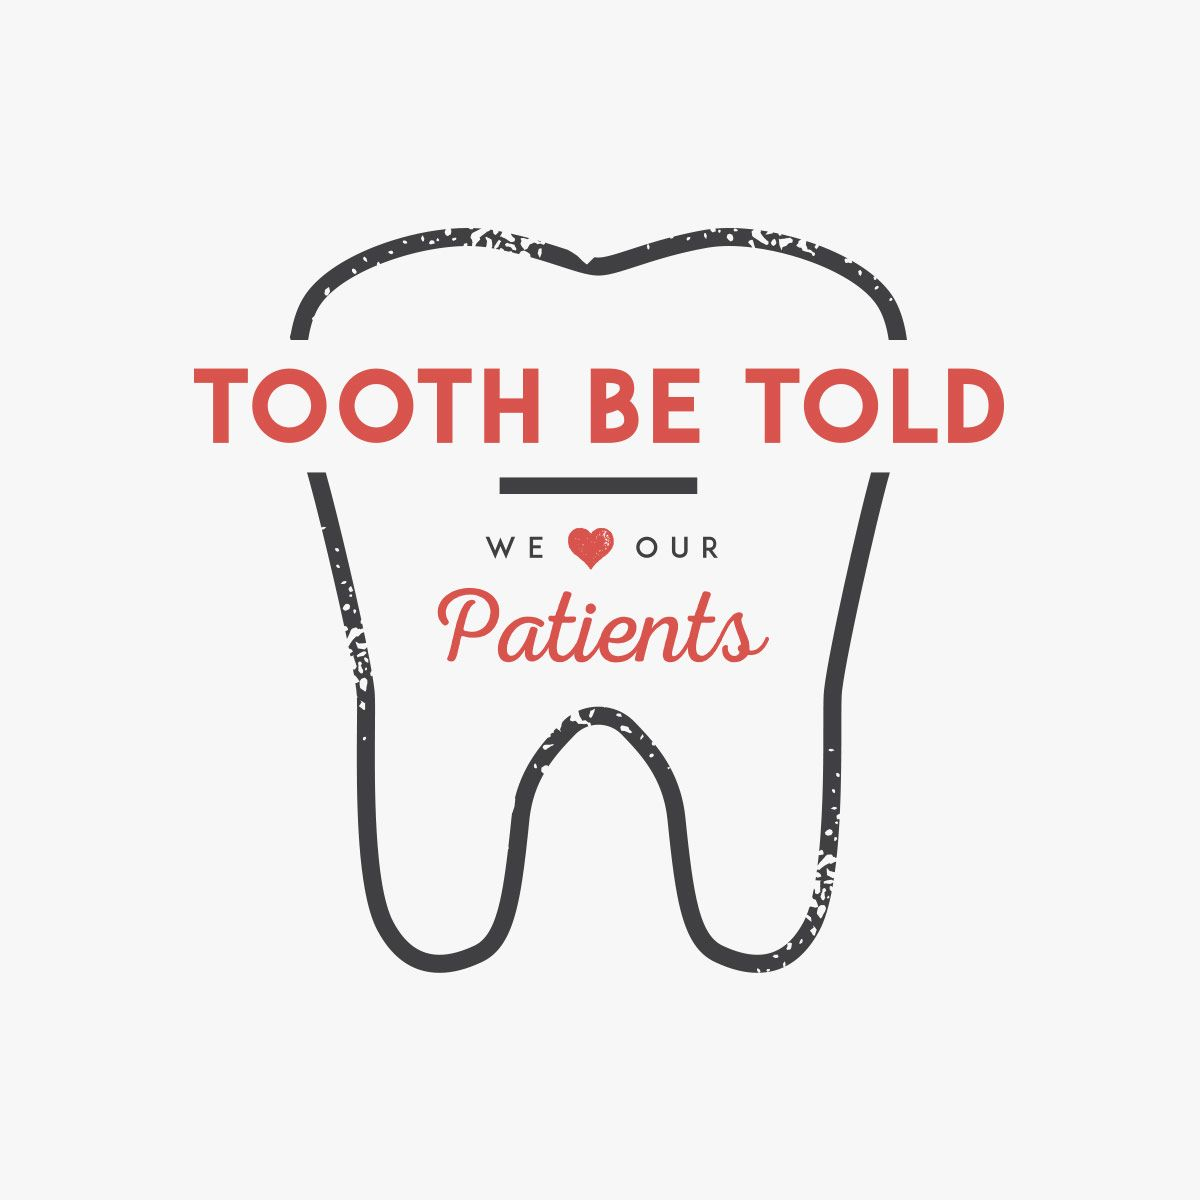 Dental Quotes Tooth Be Told We Love Our Patients If You Are In Need Of A New